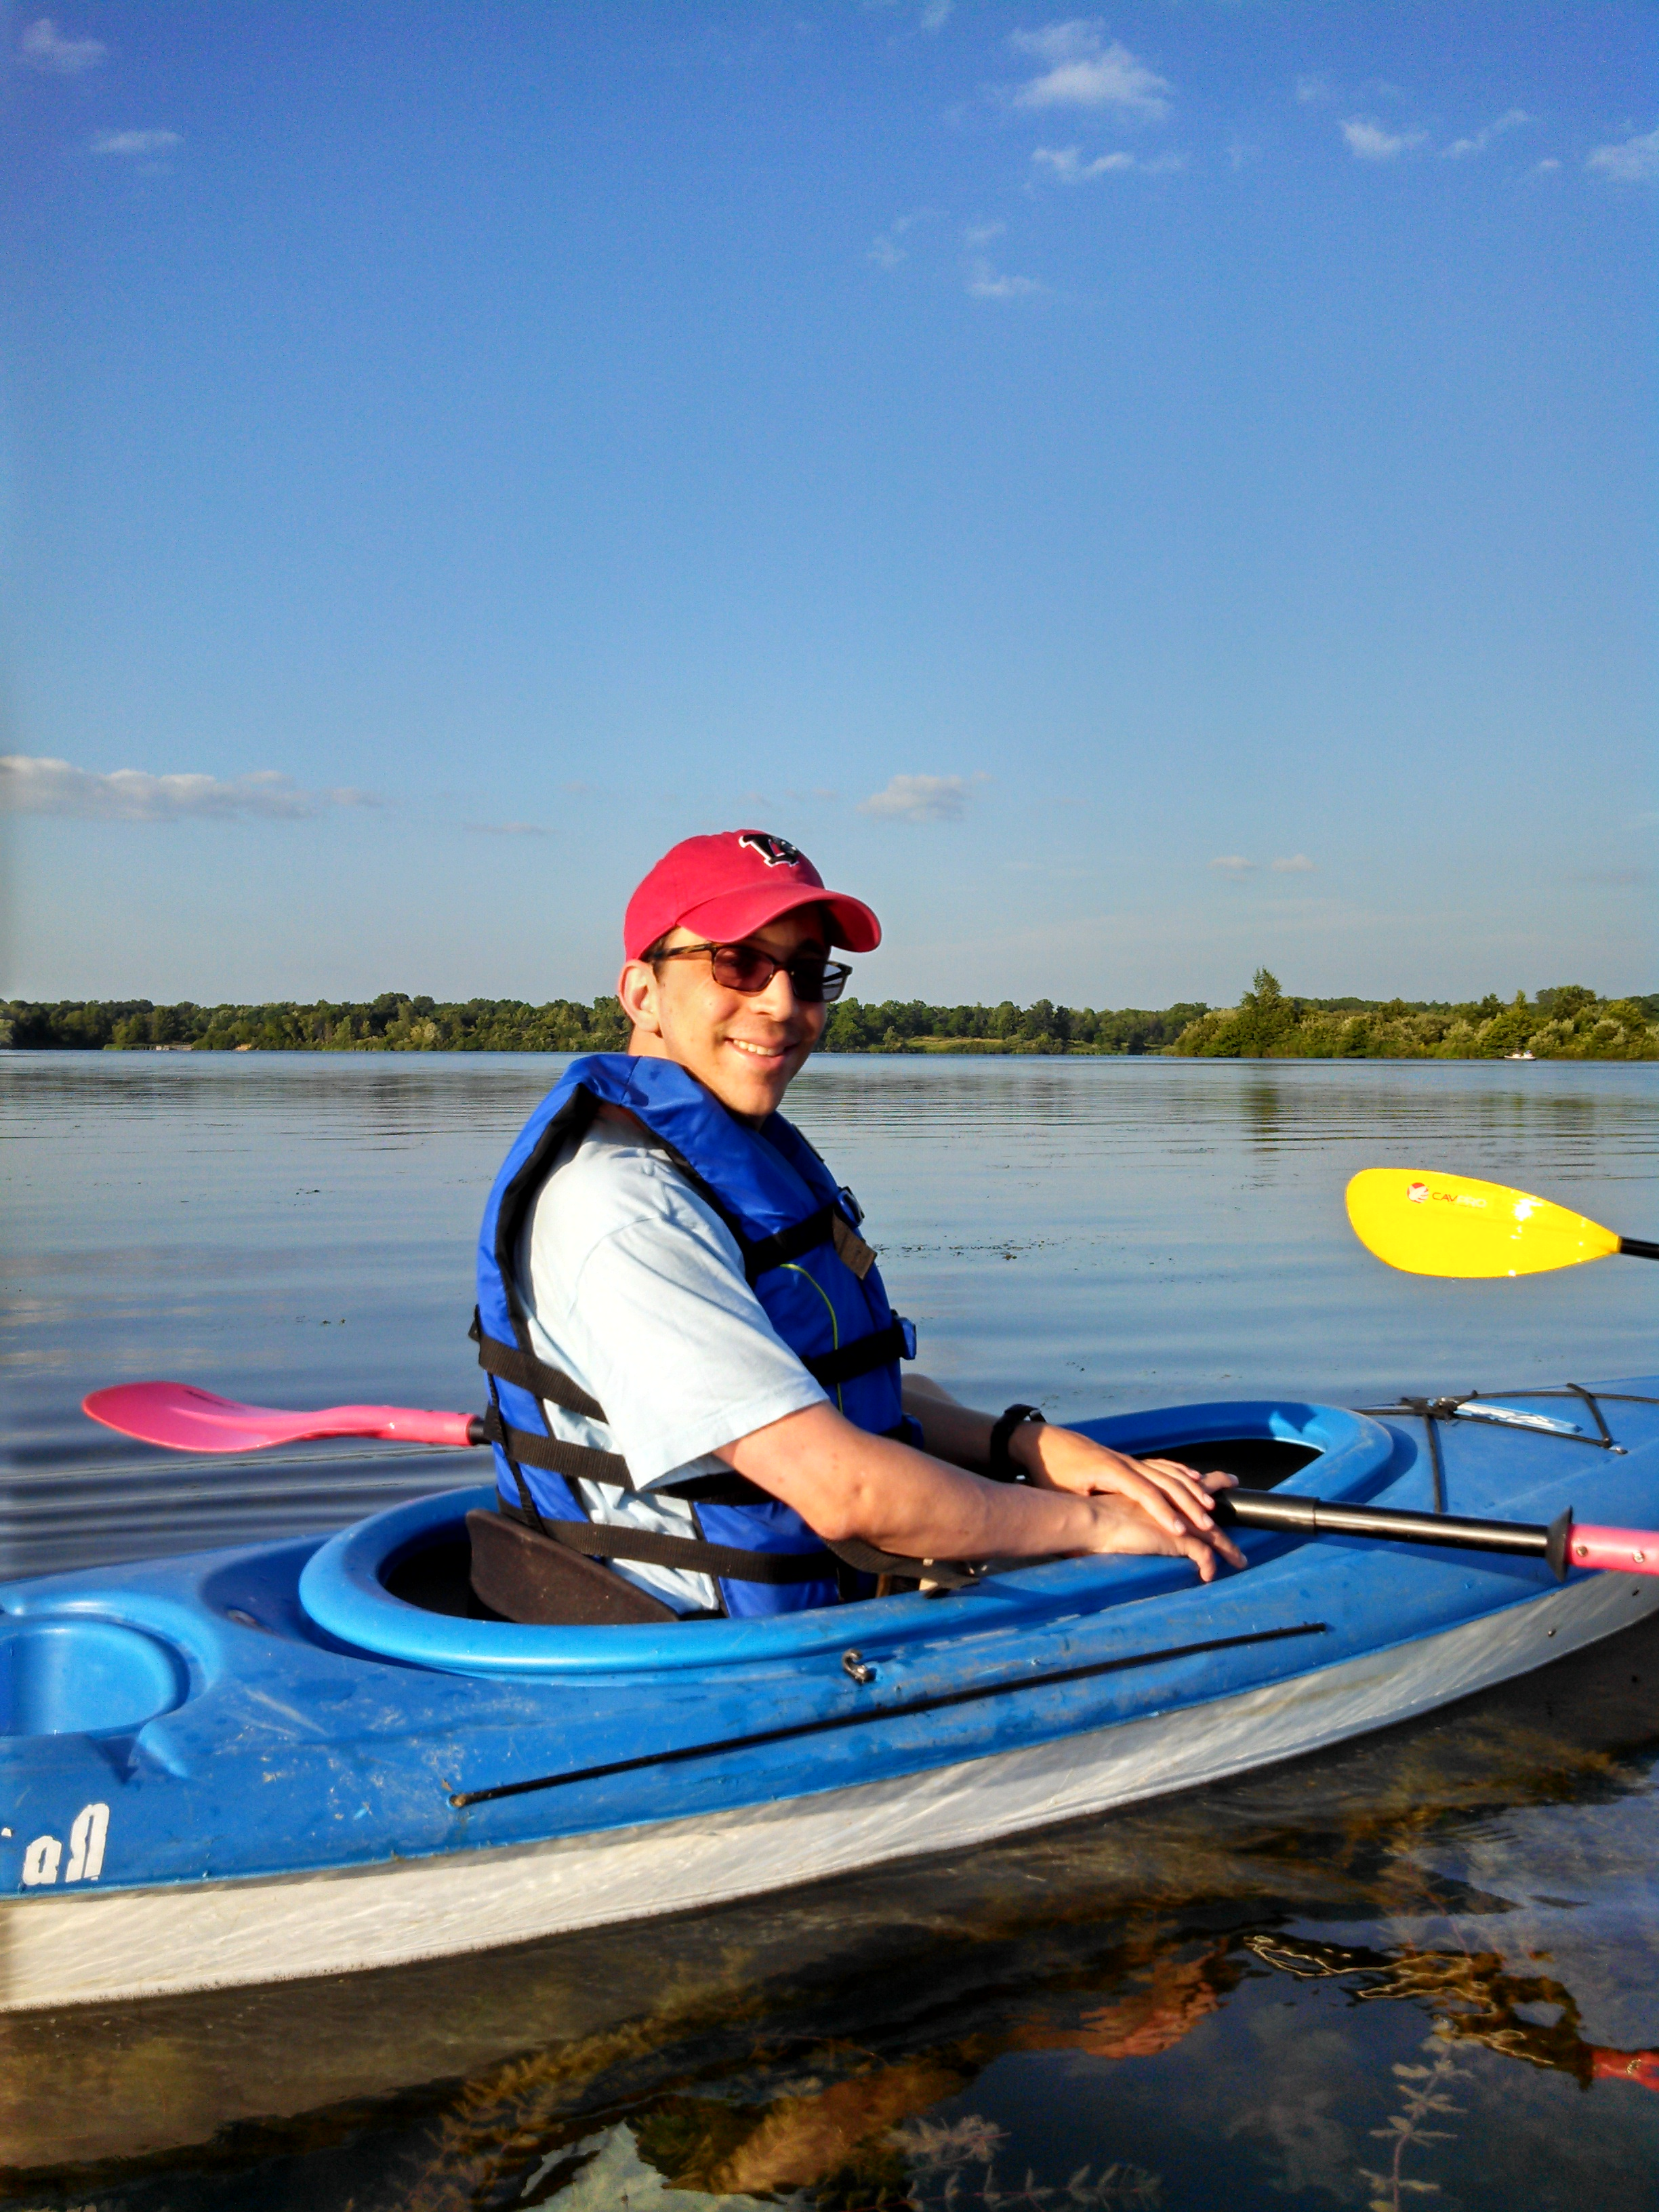 Me in a kayak on Lake Ovid